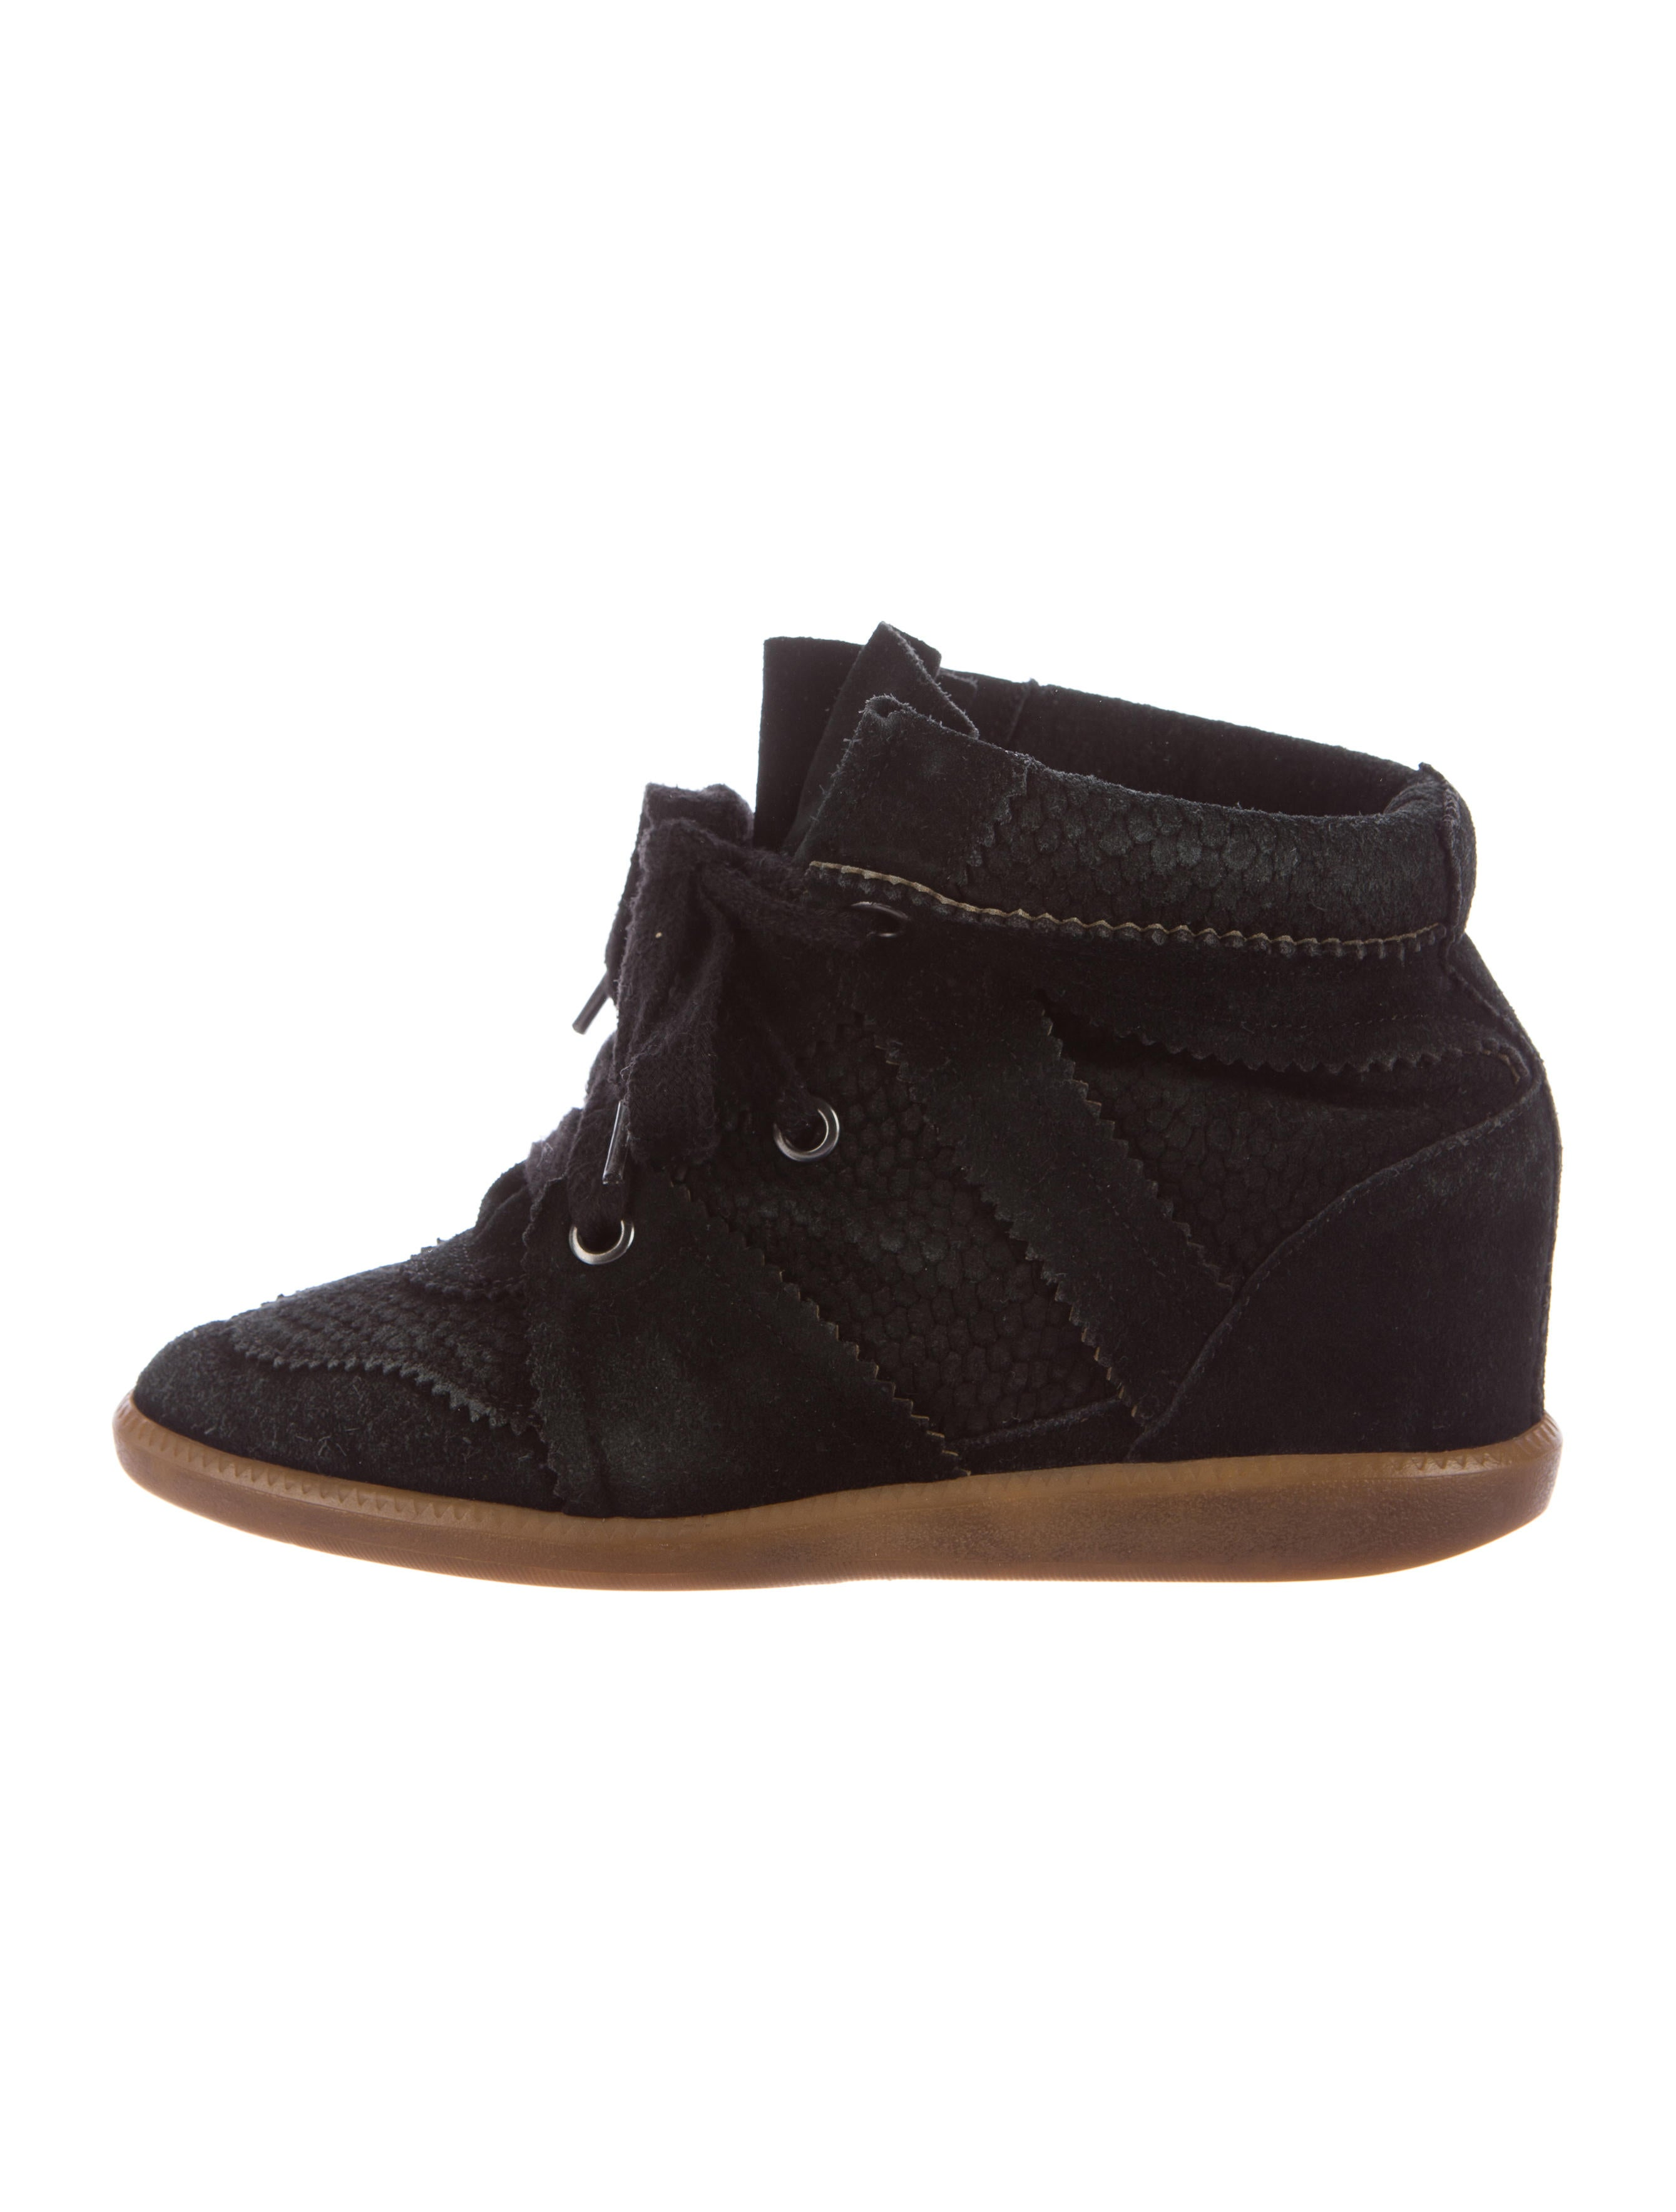 isabel marant bobby wedge sneakers shoes isa41710 the realreal. Black Bedroom Furniture Sets. Home Design Ideas